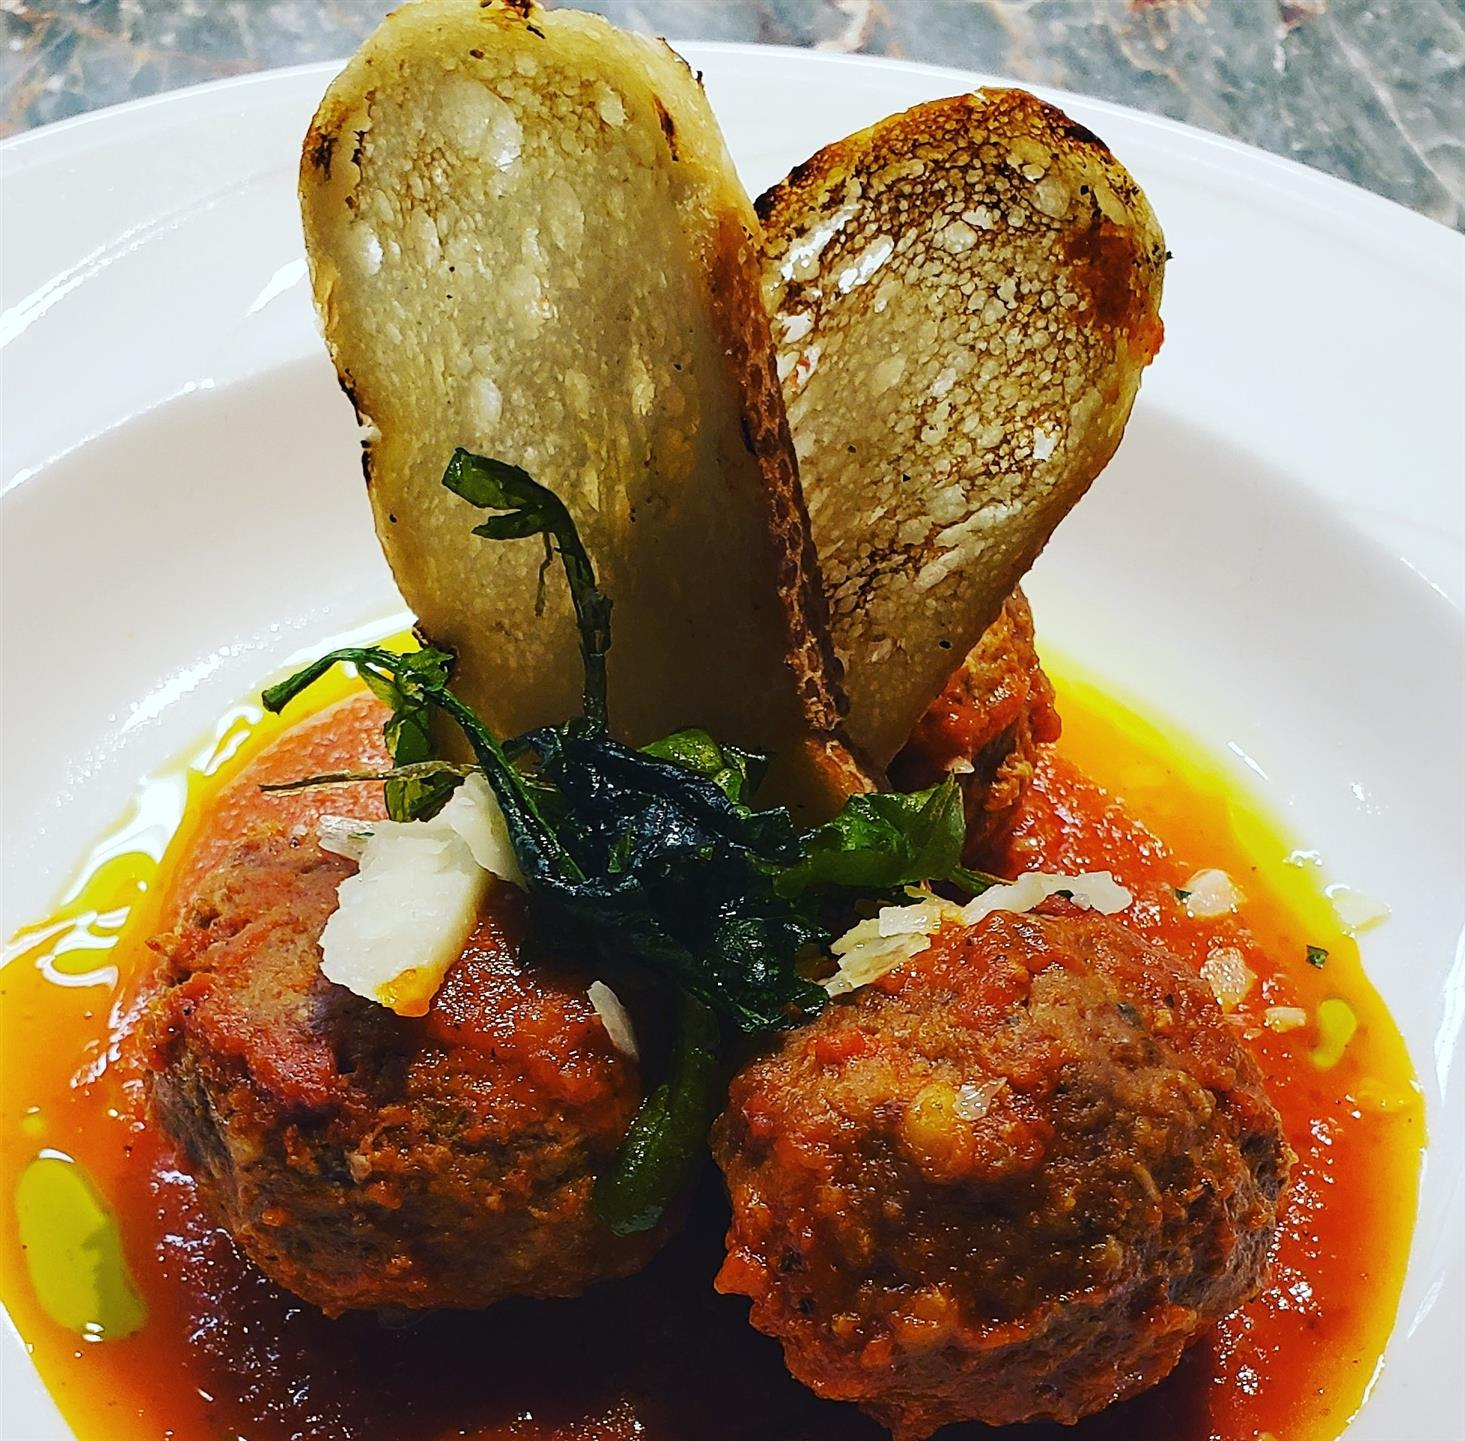 Polpette Della Mamma. Homemade Wagyu beef meatballs topped with tomato sauce and toasted slices of bread